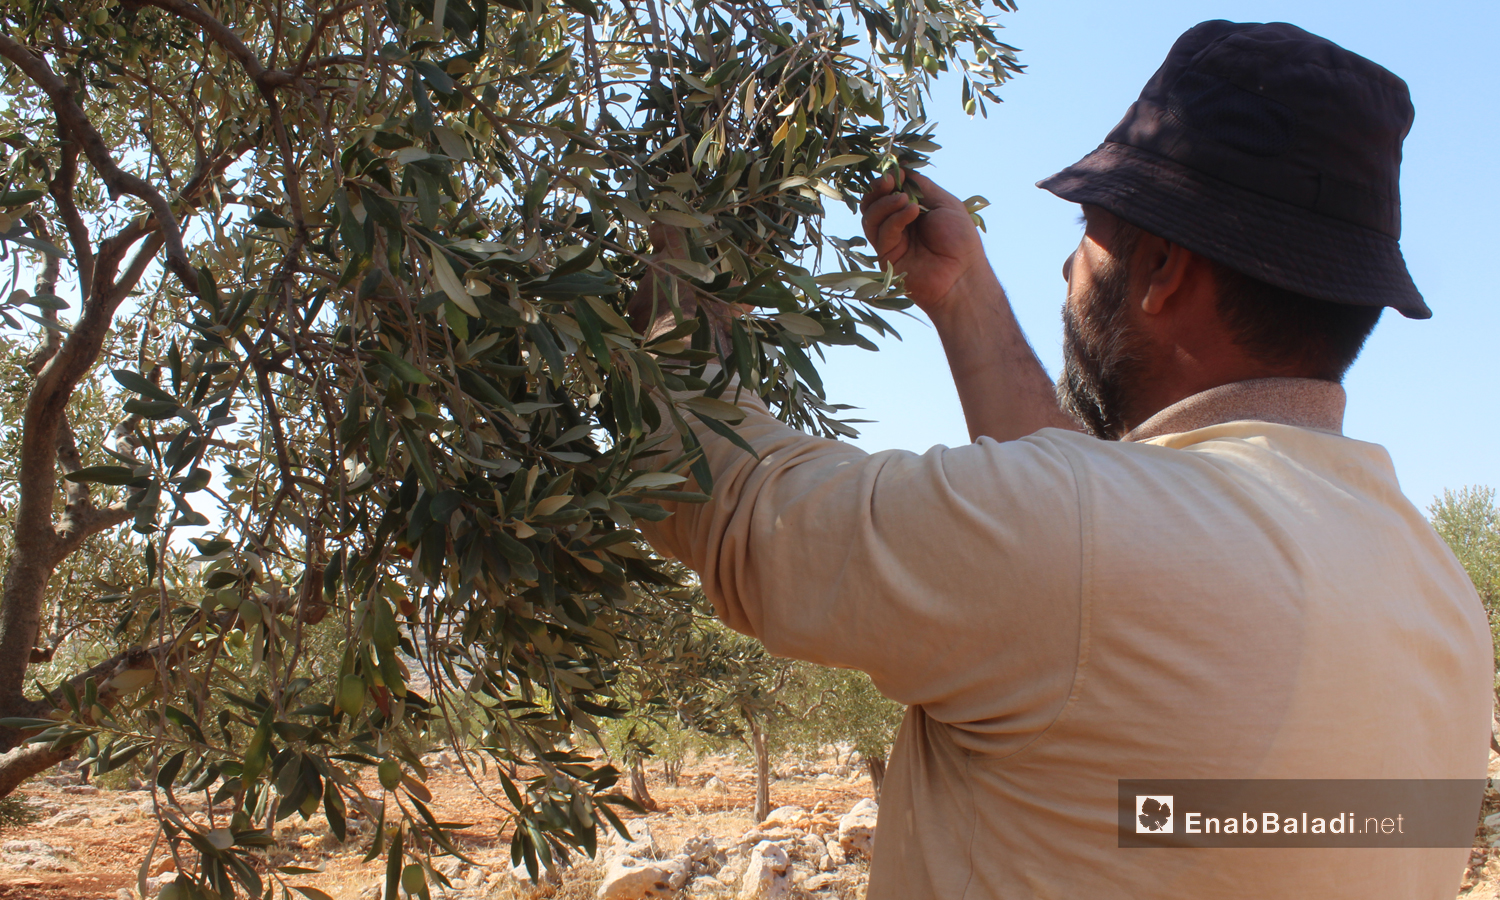 Daily workers harvest olives in one of the fields in Idlib - 16 October 2020 (Enab Baladi / Iyad Abdel Jawad)